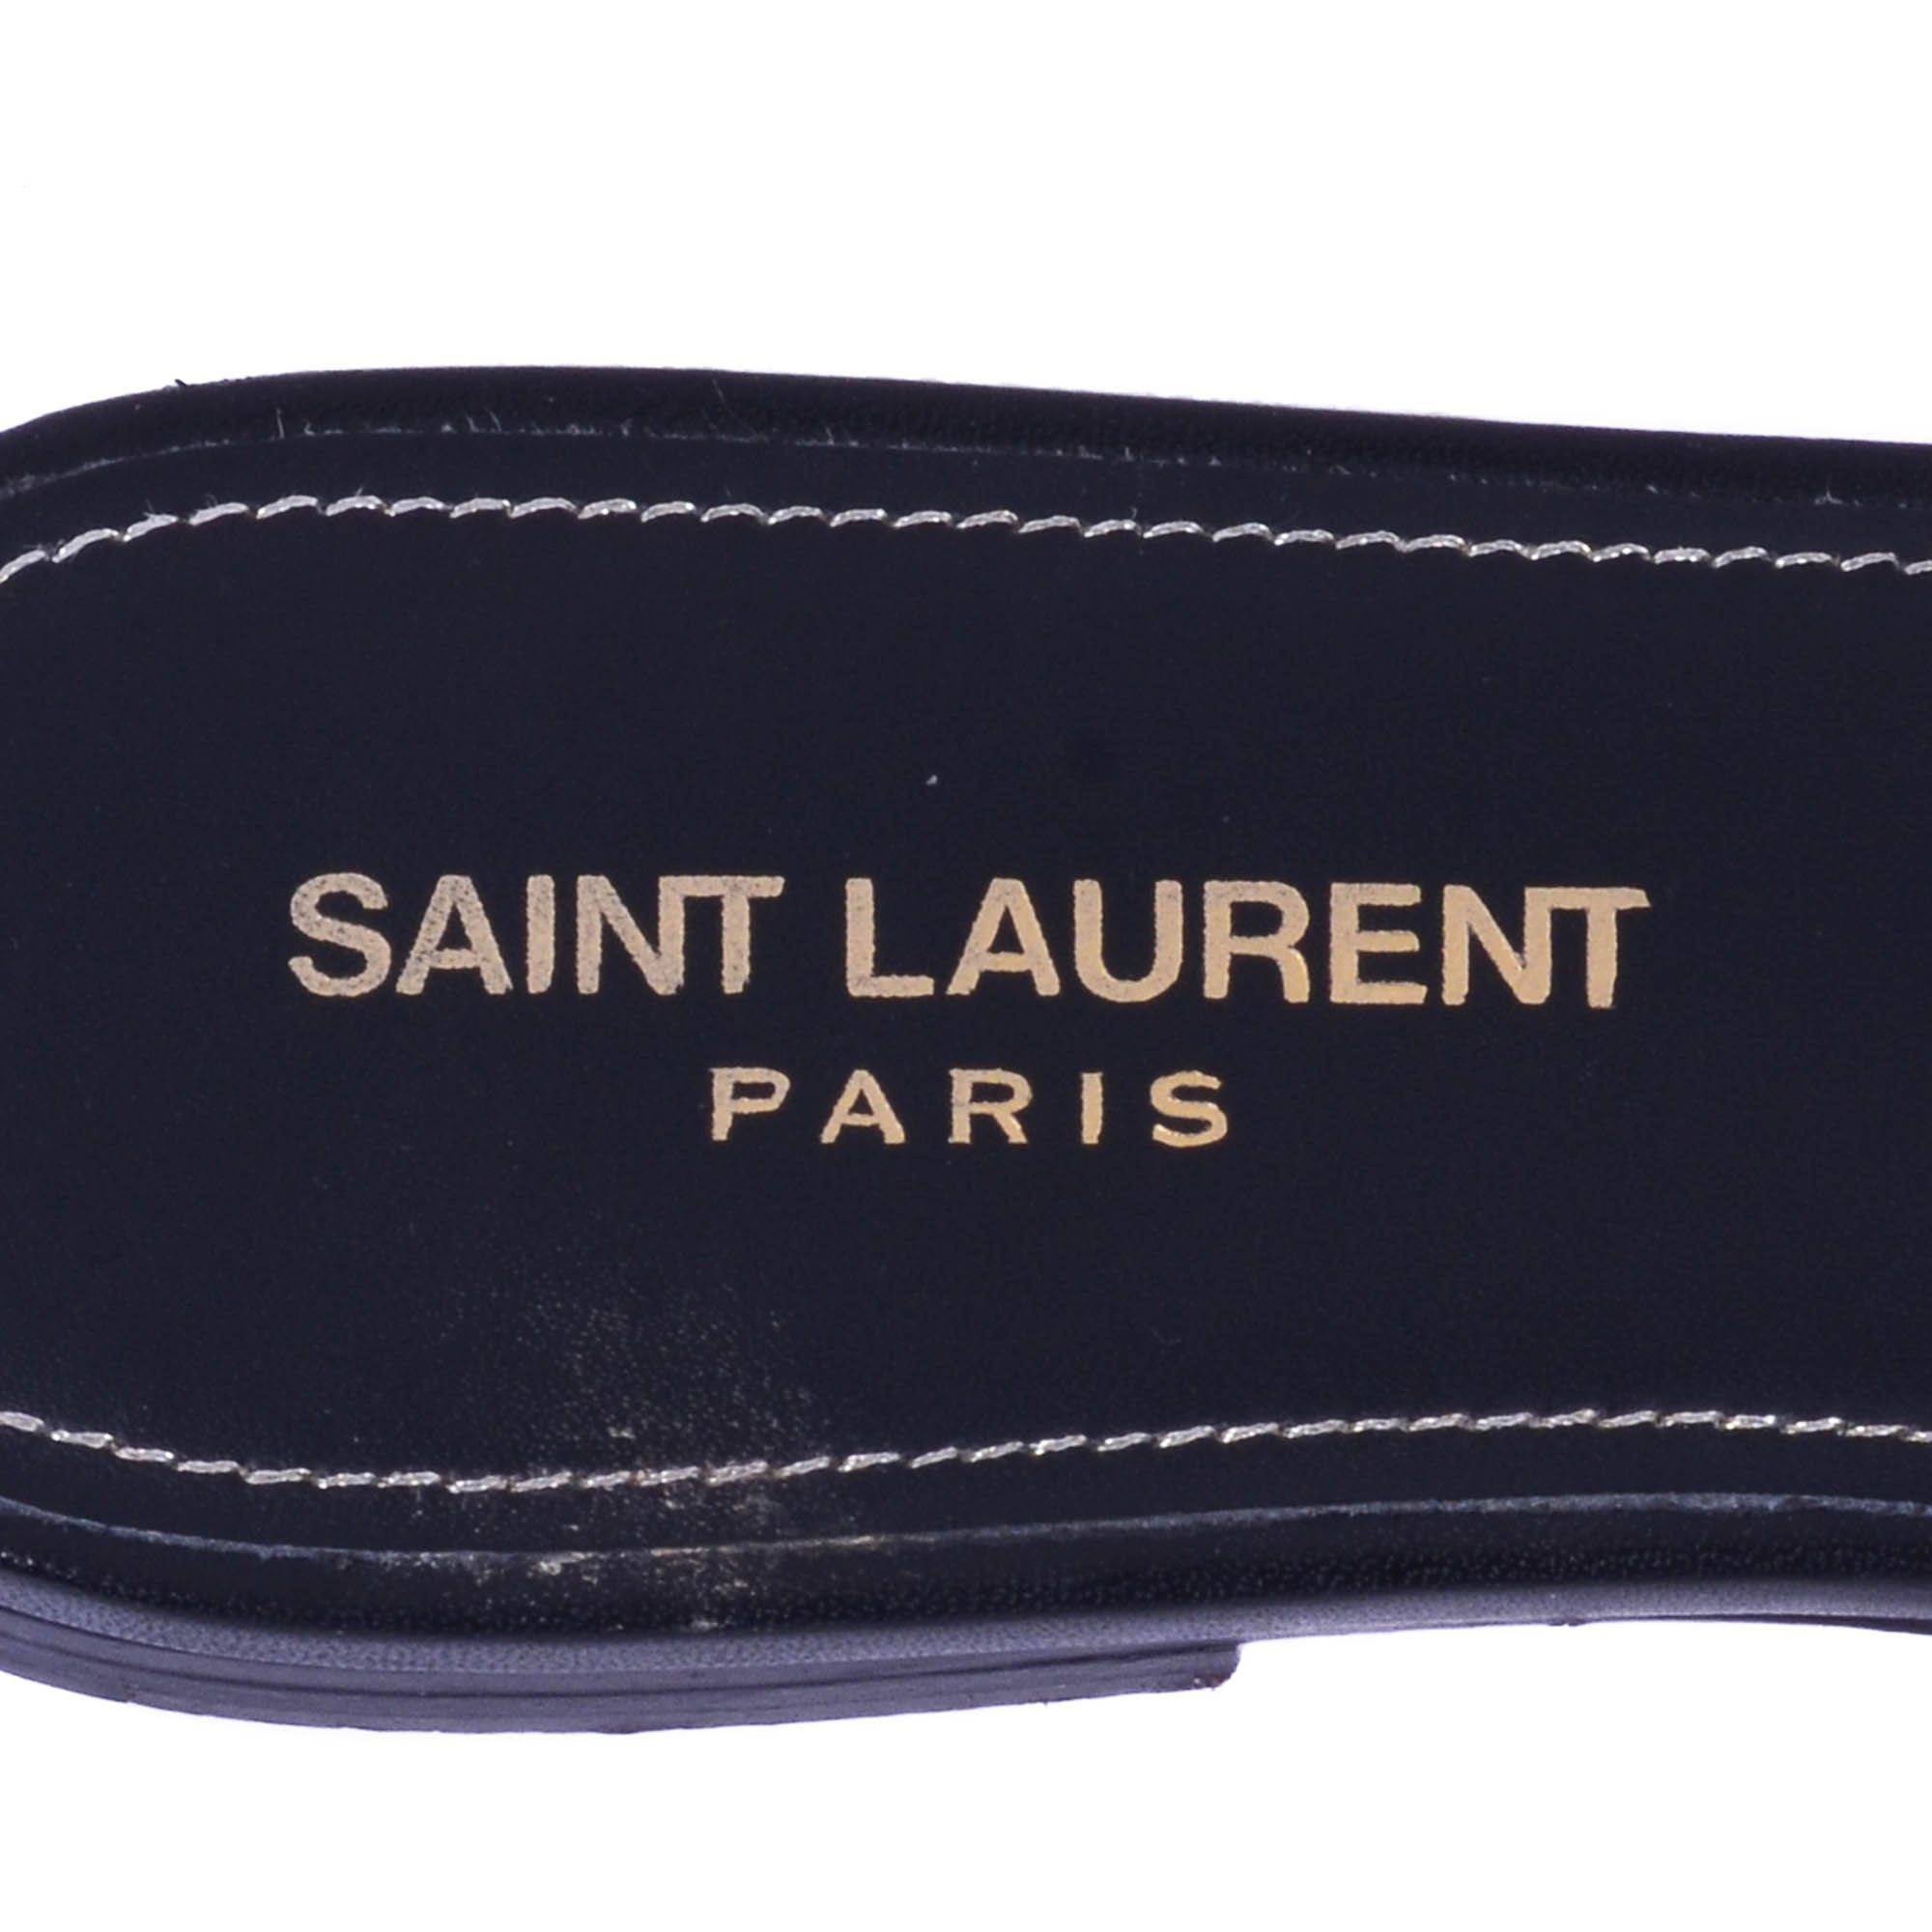 Saint Laurent Black Tribute Flat Sandals